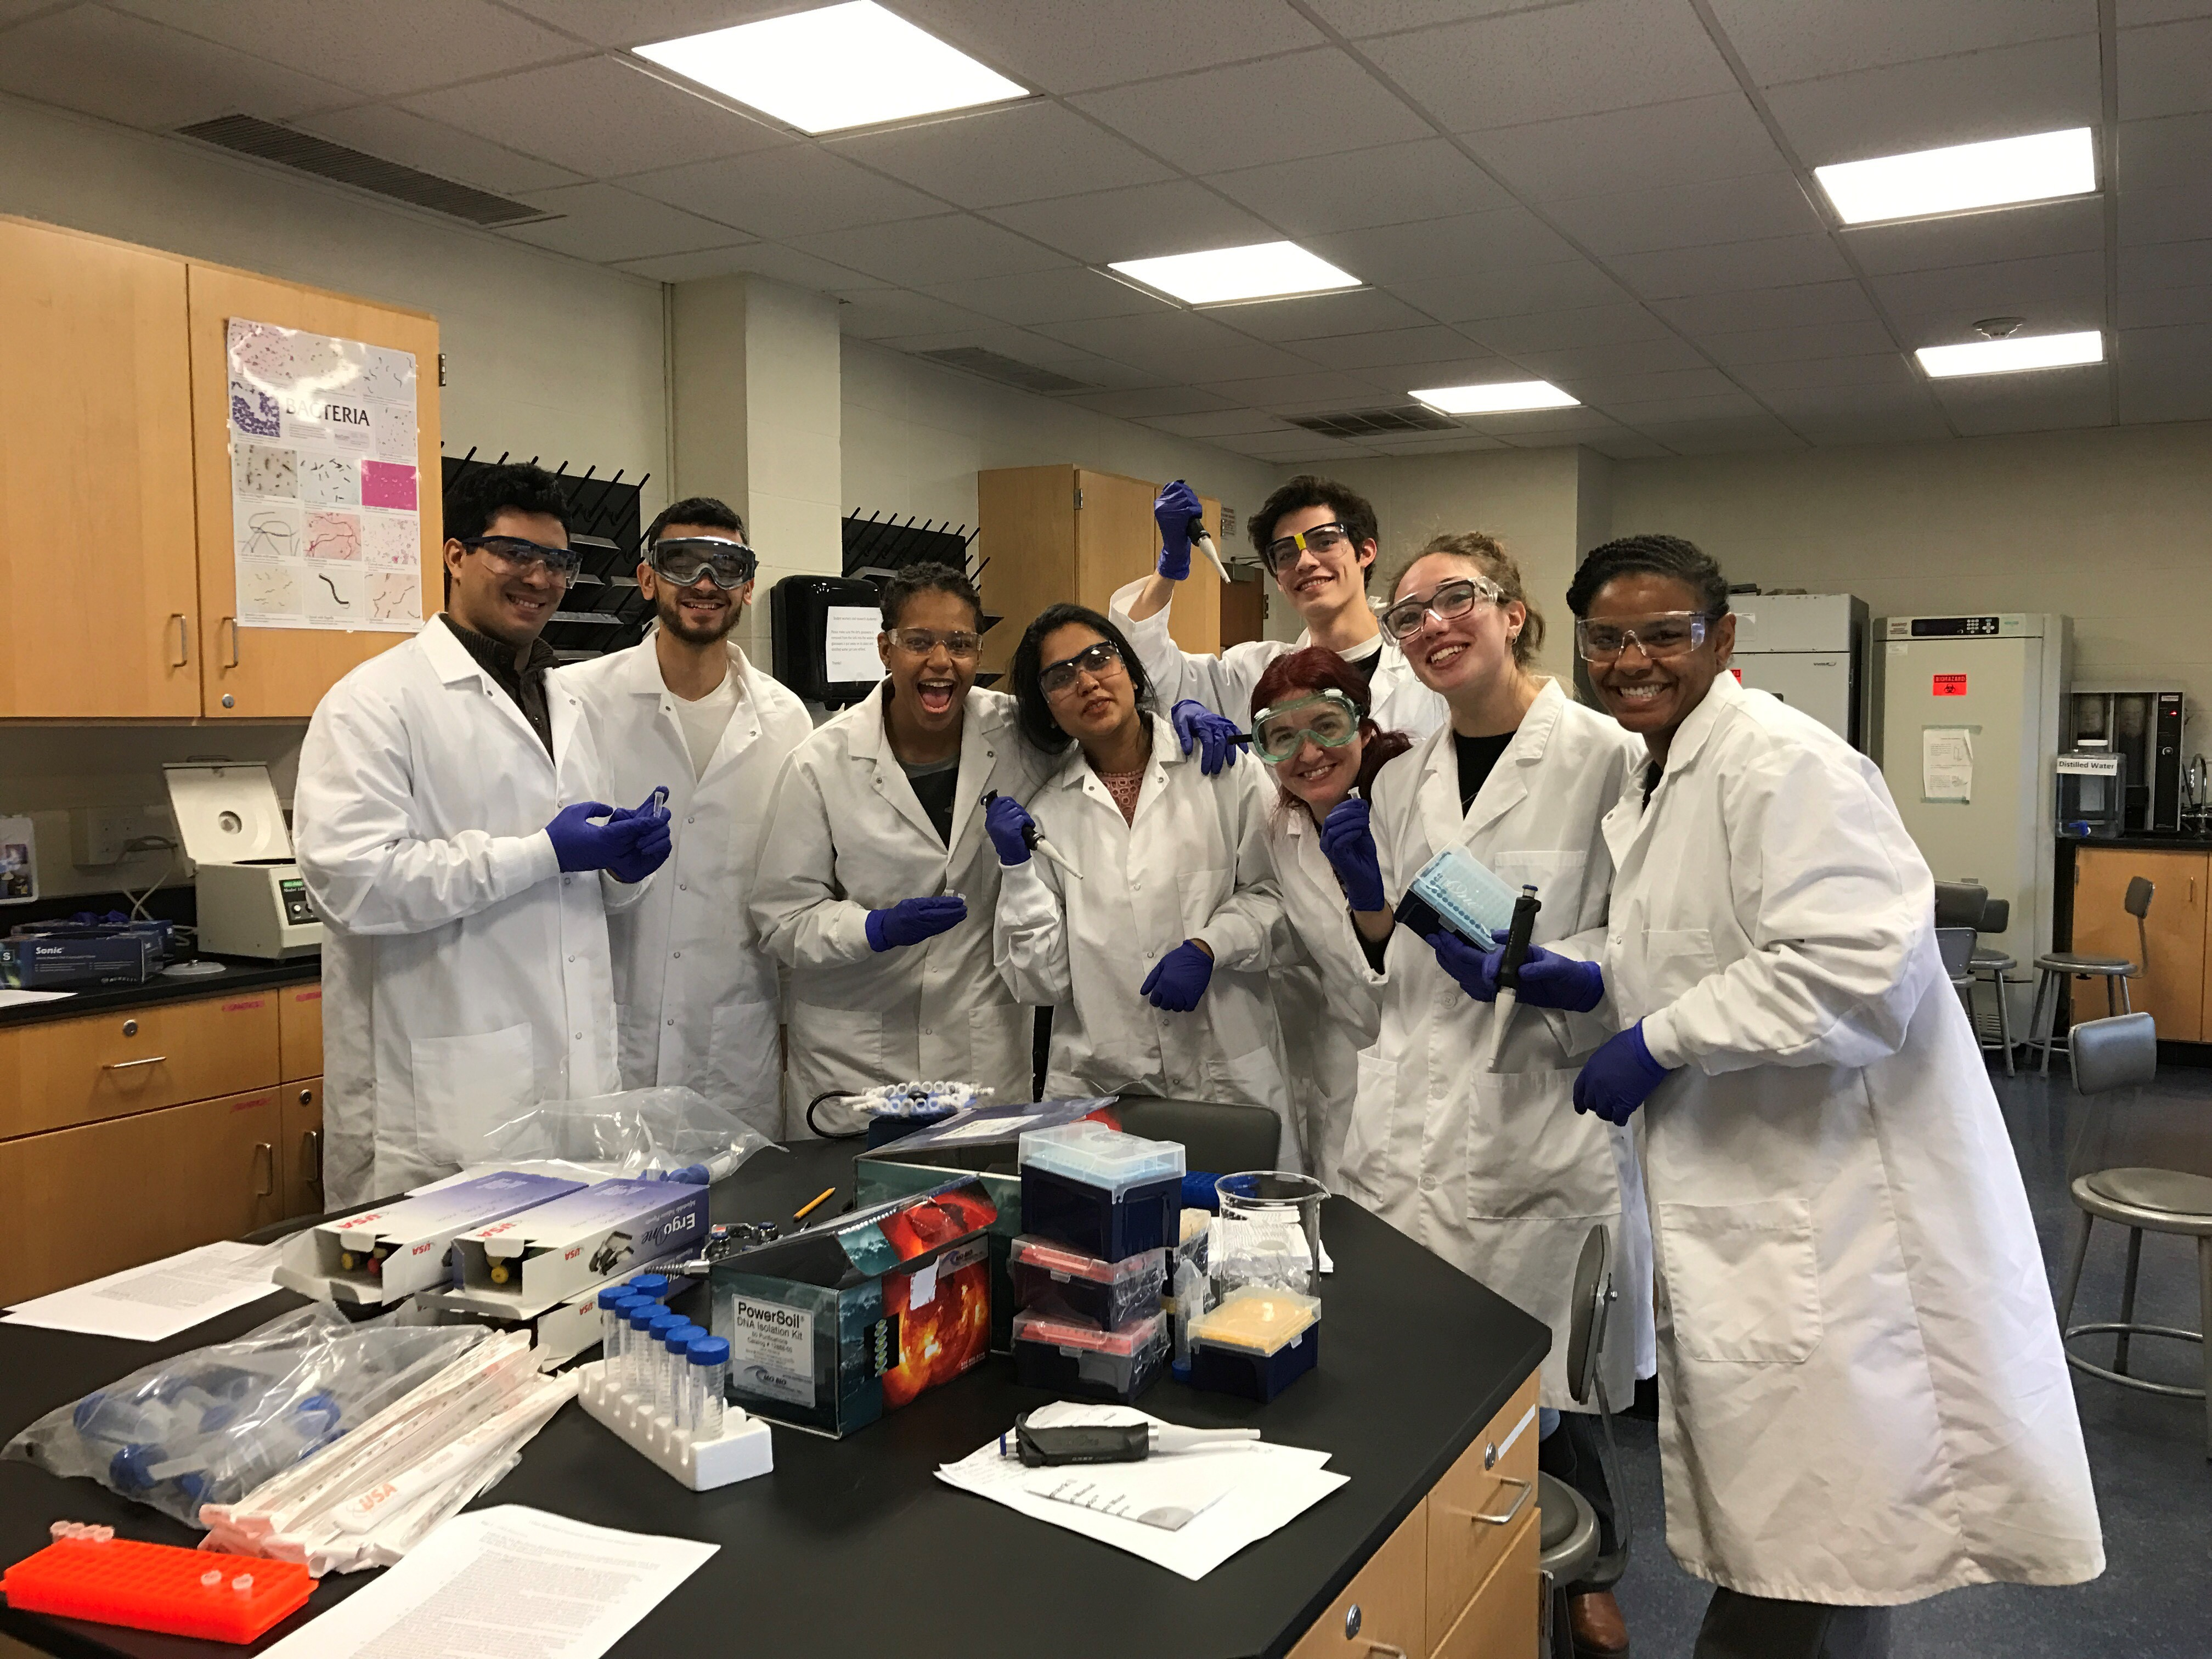 Dr. Smyth with Class in Lab